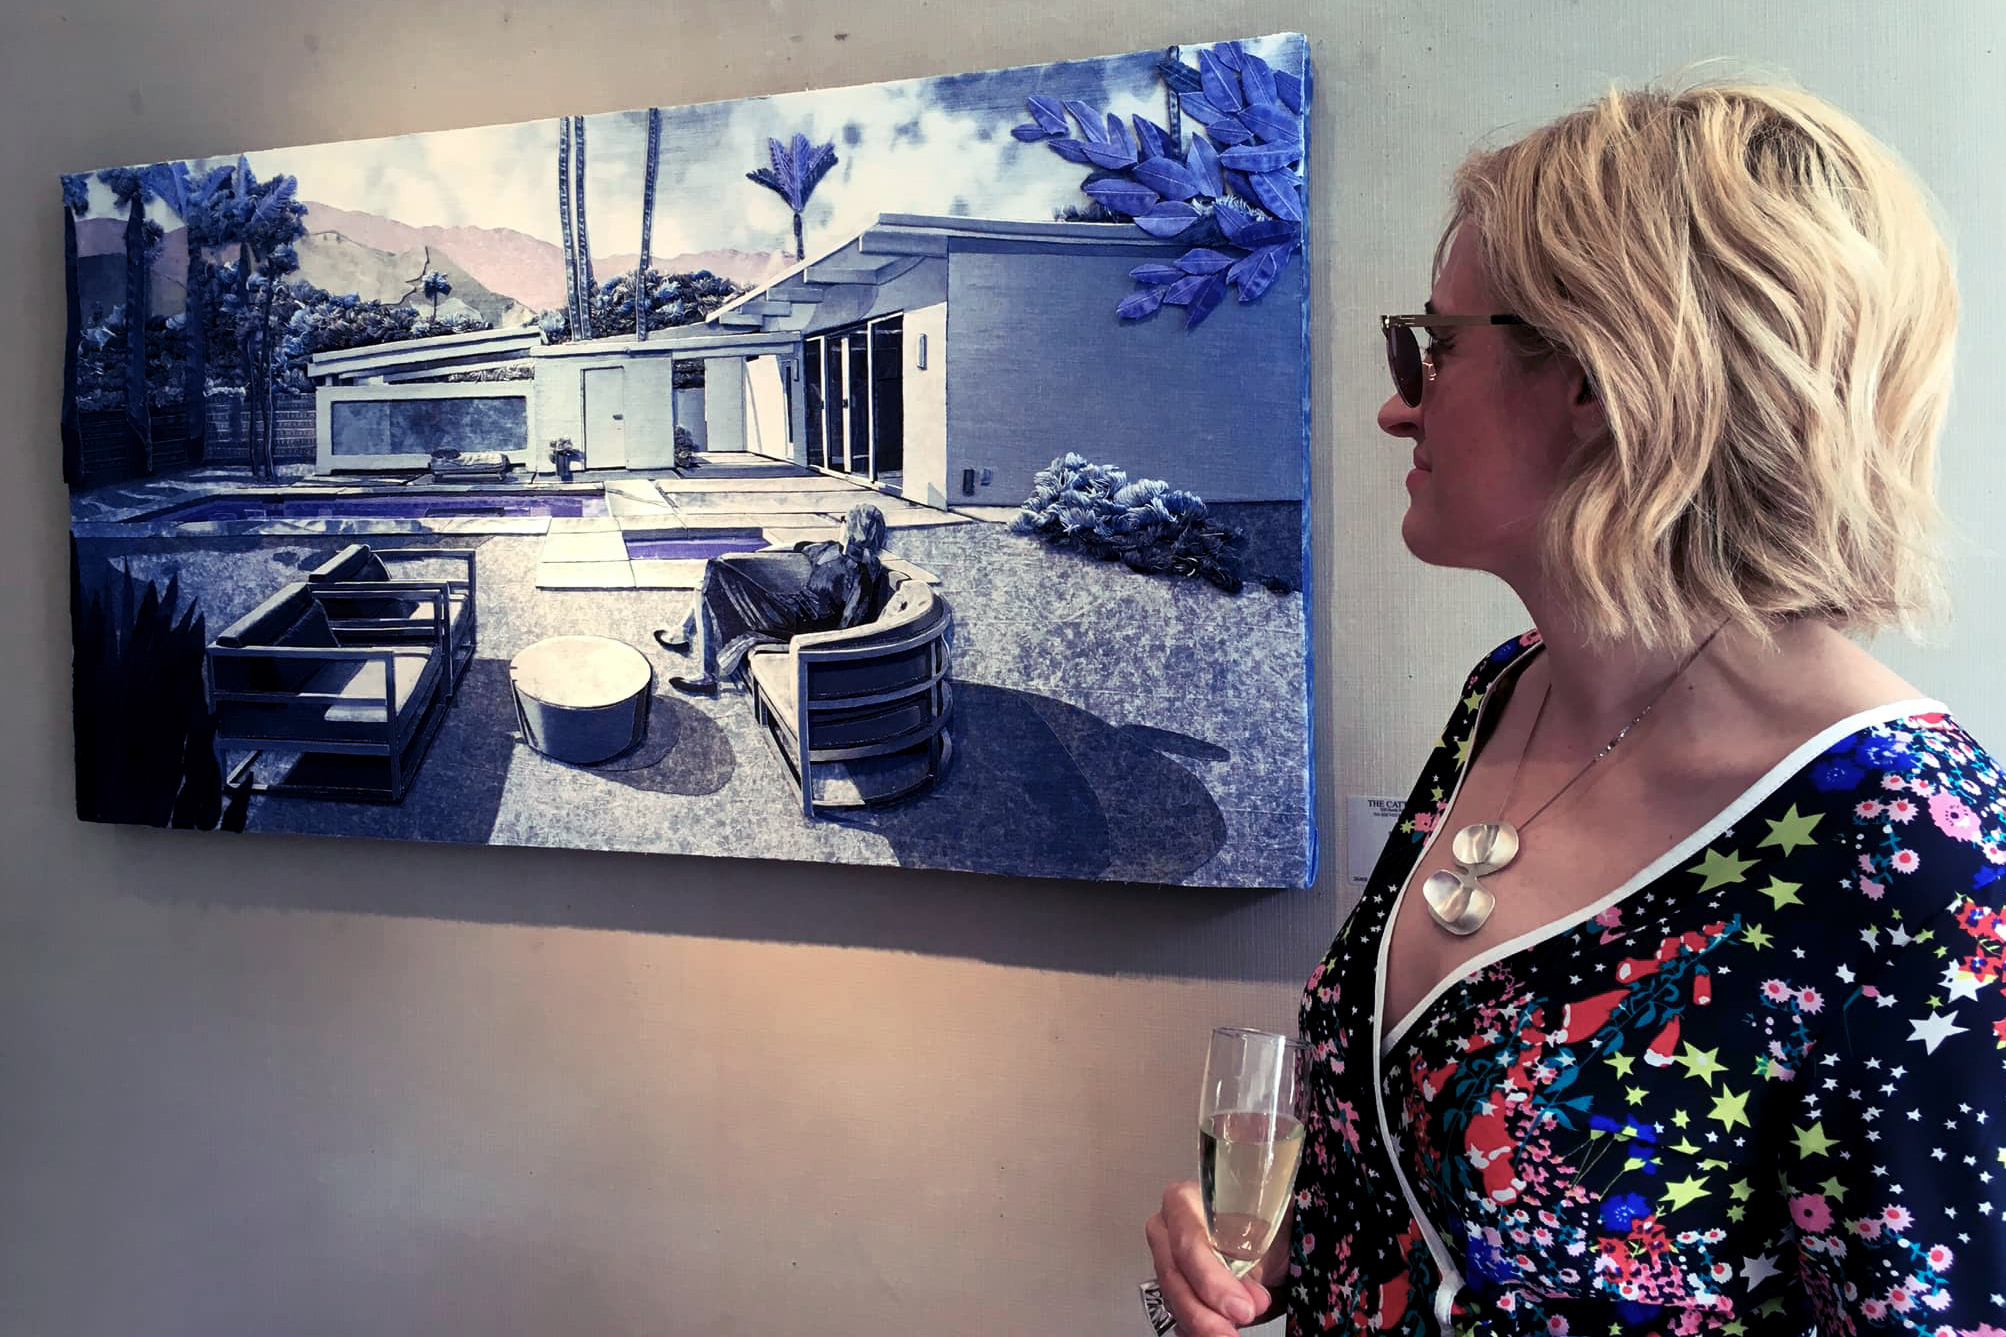 Valerie Martinez at the opening of Hotel California at the Catto Gallery, London